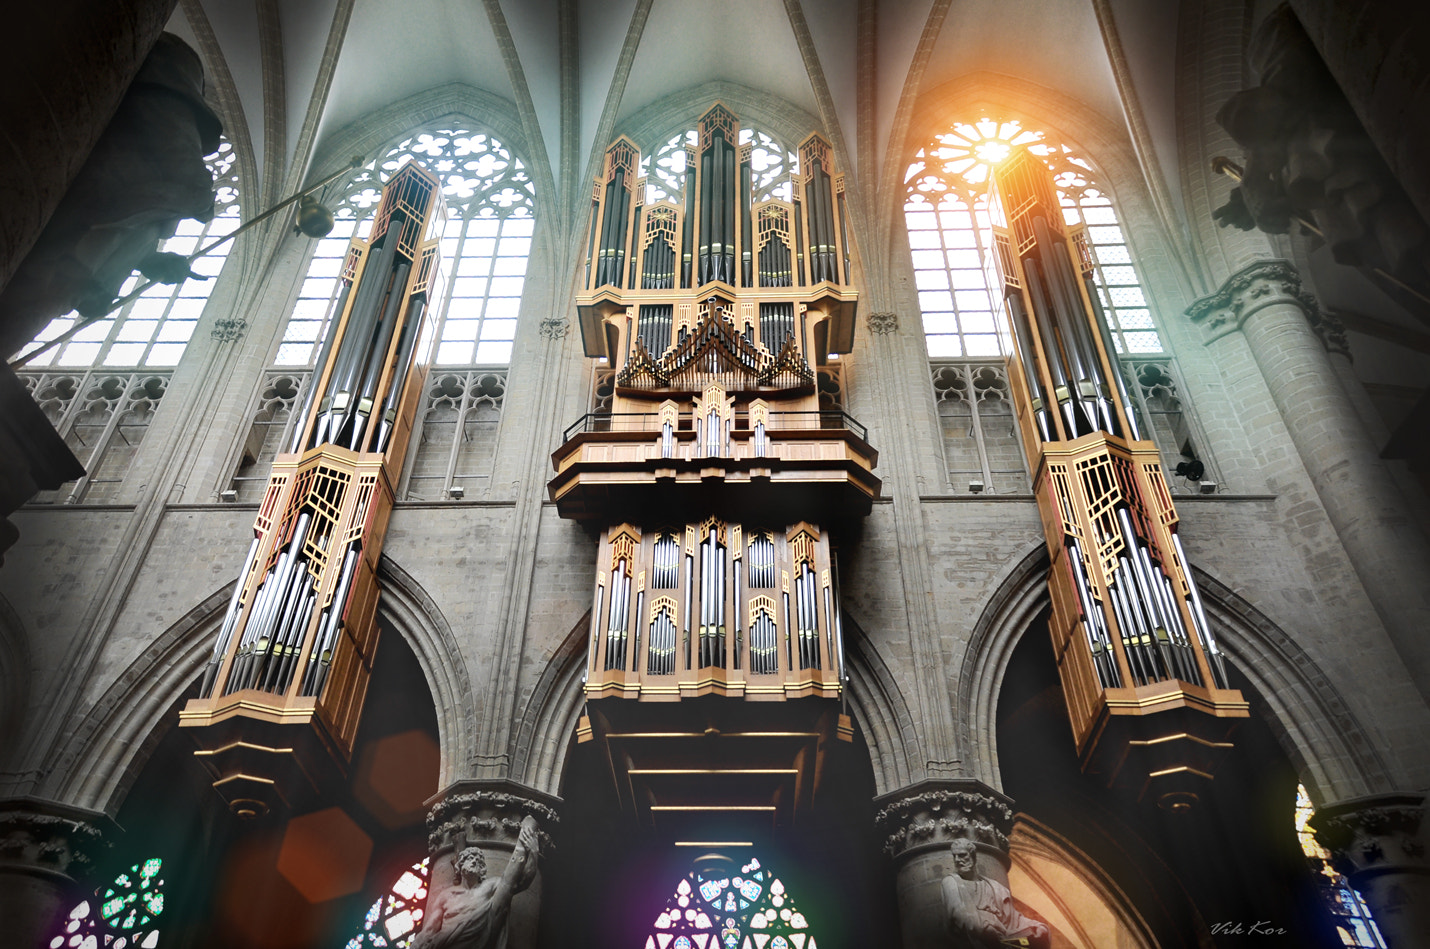 Photograph Organ in Brussels Cathedral by Viktor Korostynski on 500px